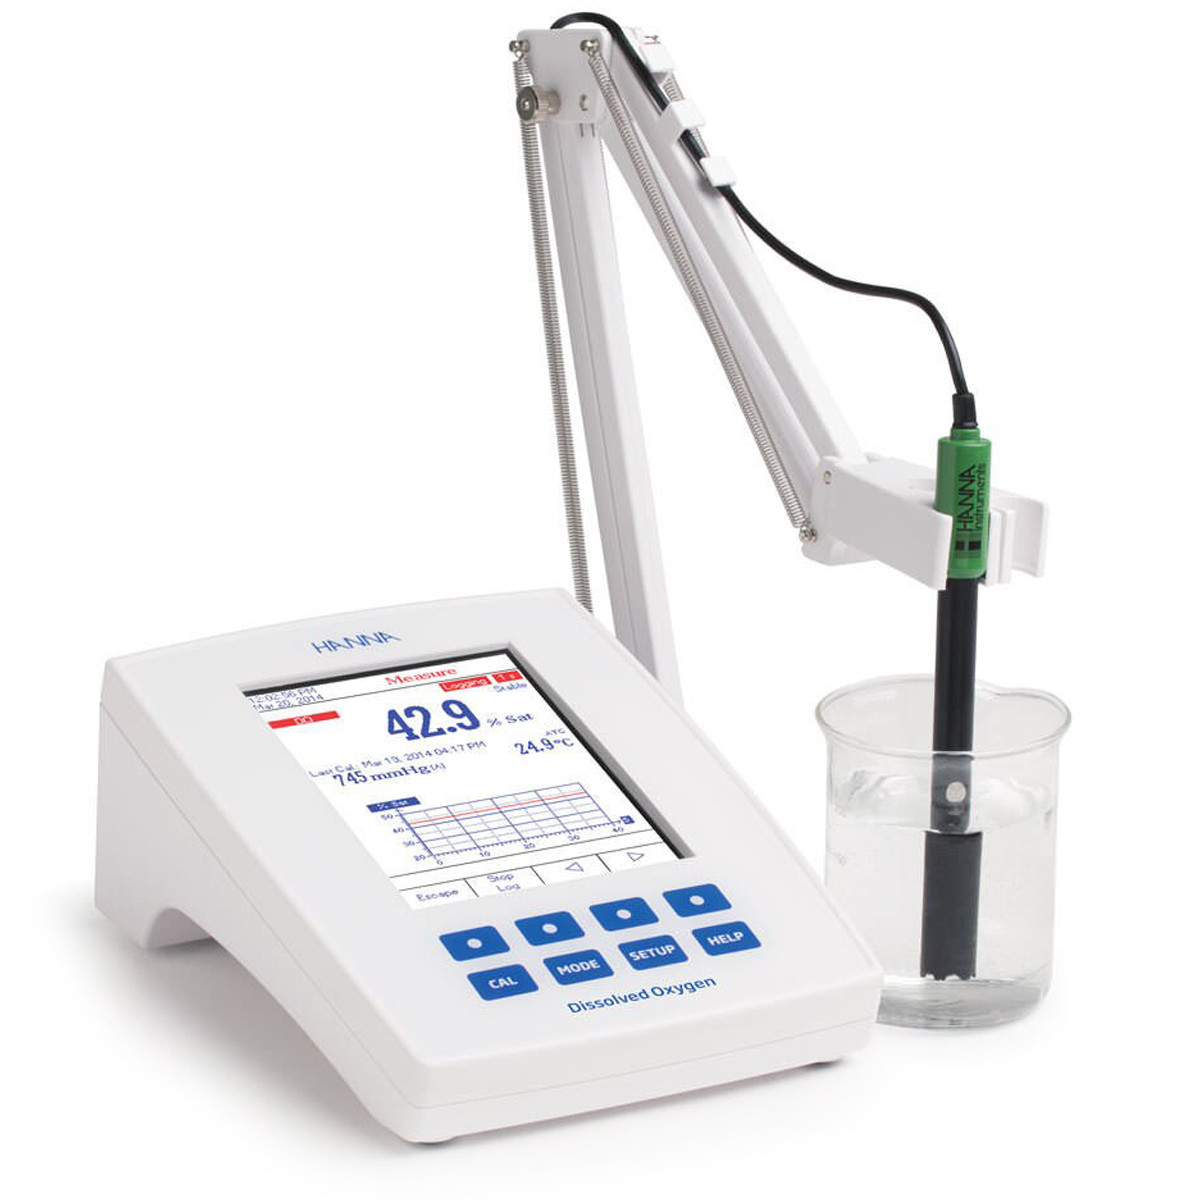 Laboratory Research Grade Benchtop Dissolved Oxygen and BOD Meter